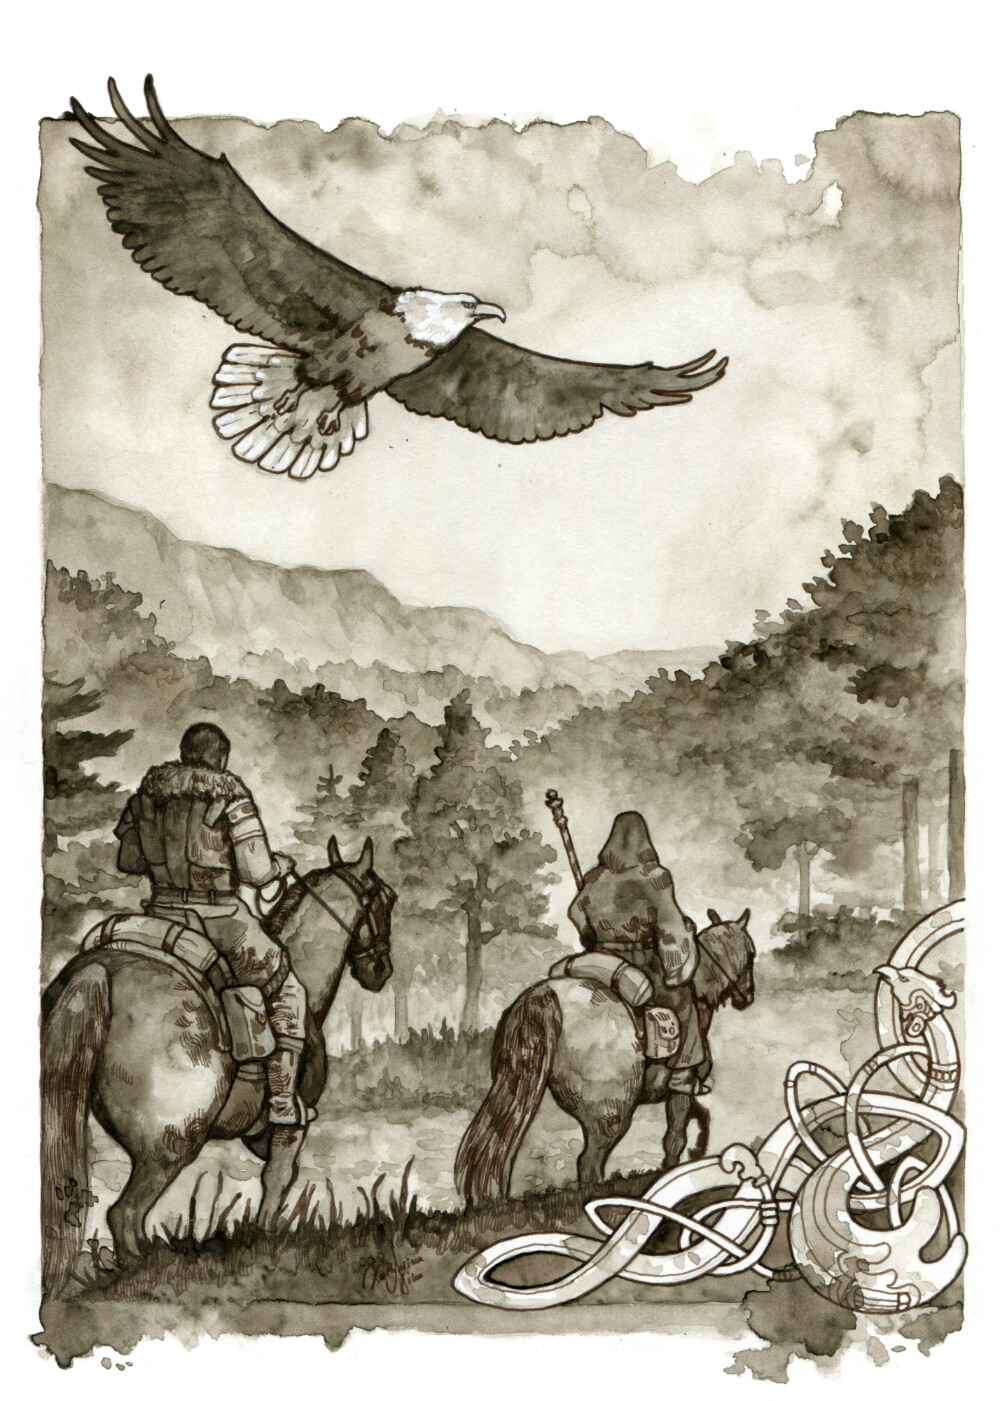 The magician follows the travelers as an eagle